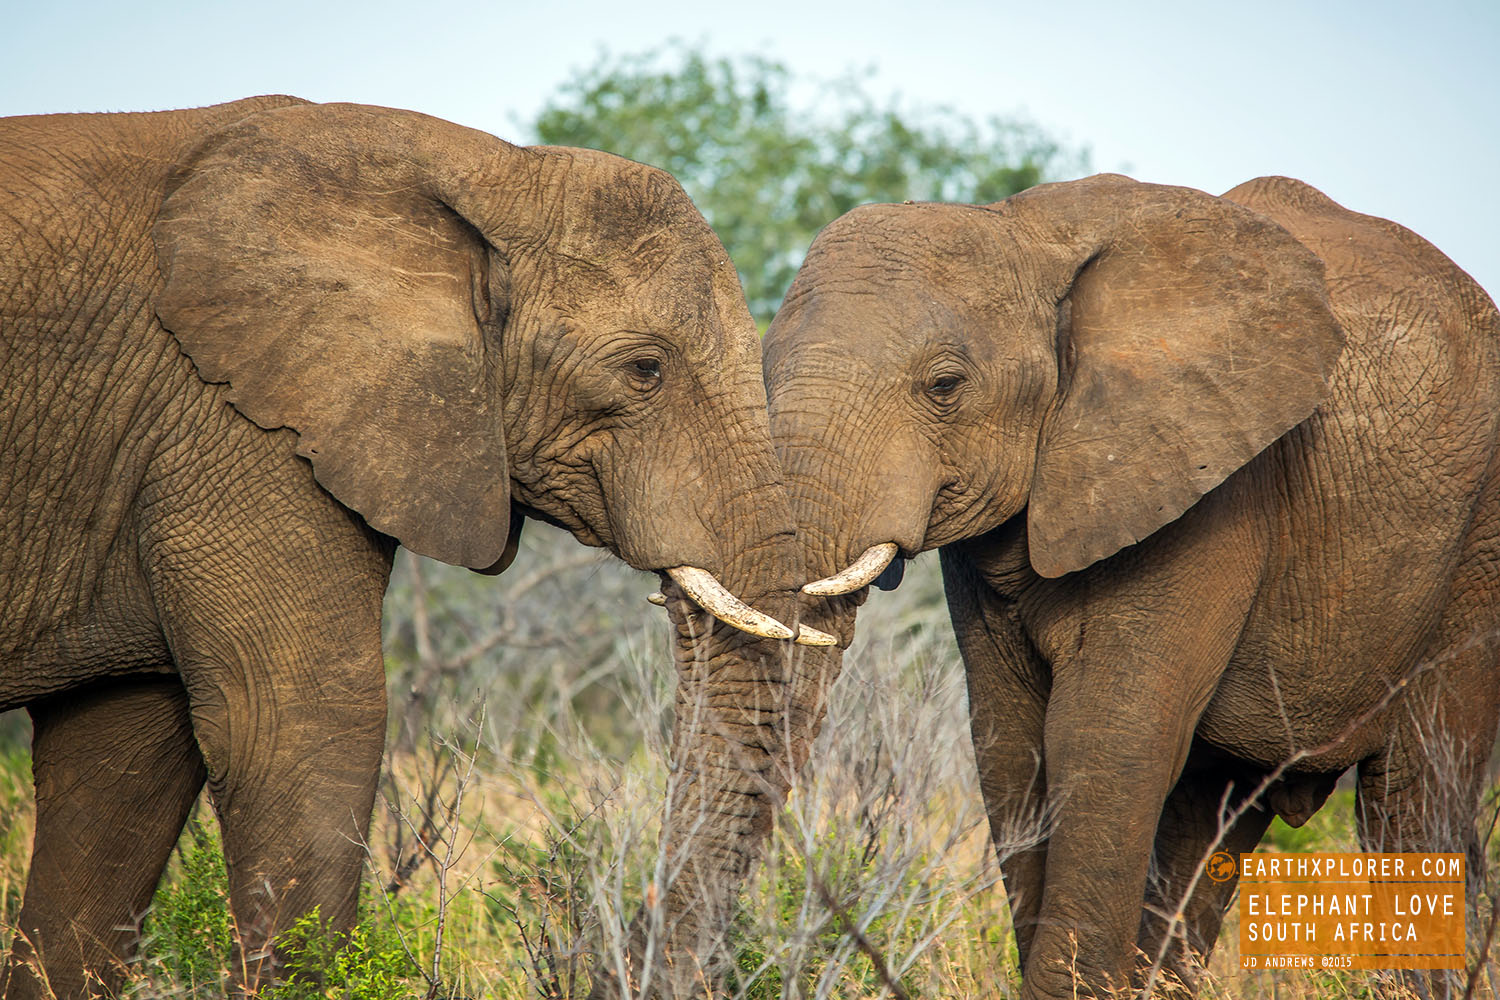 African elephants are the largest land animals on Earth